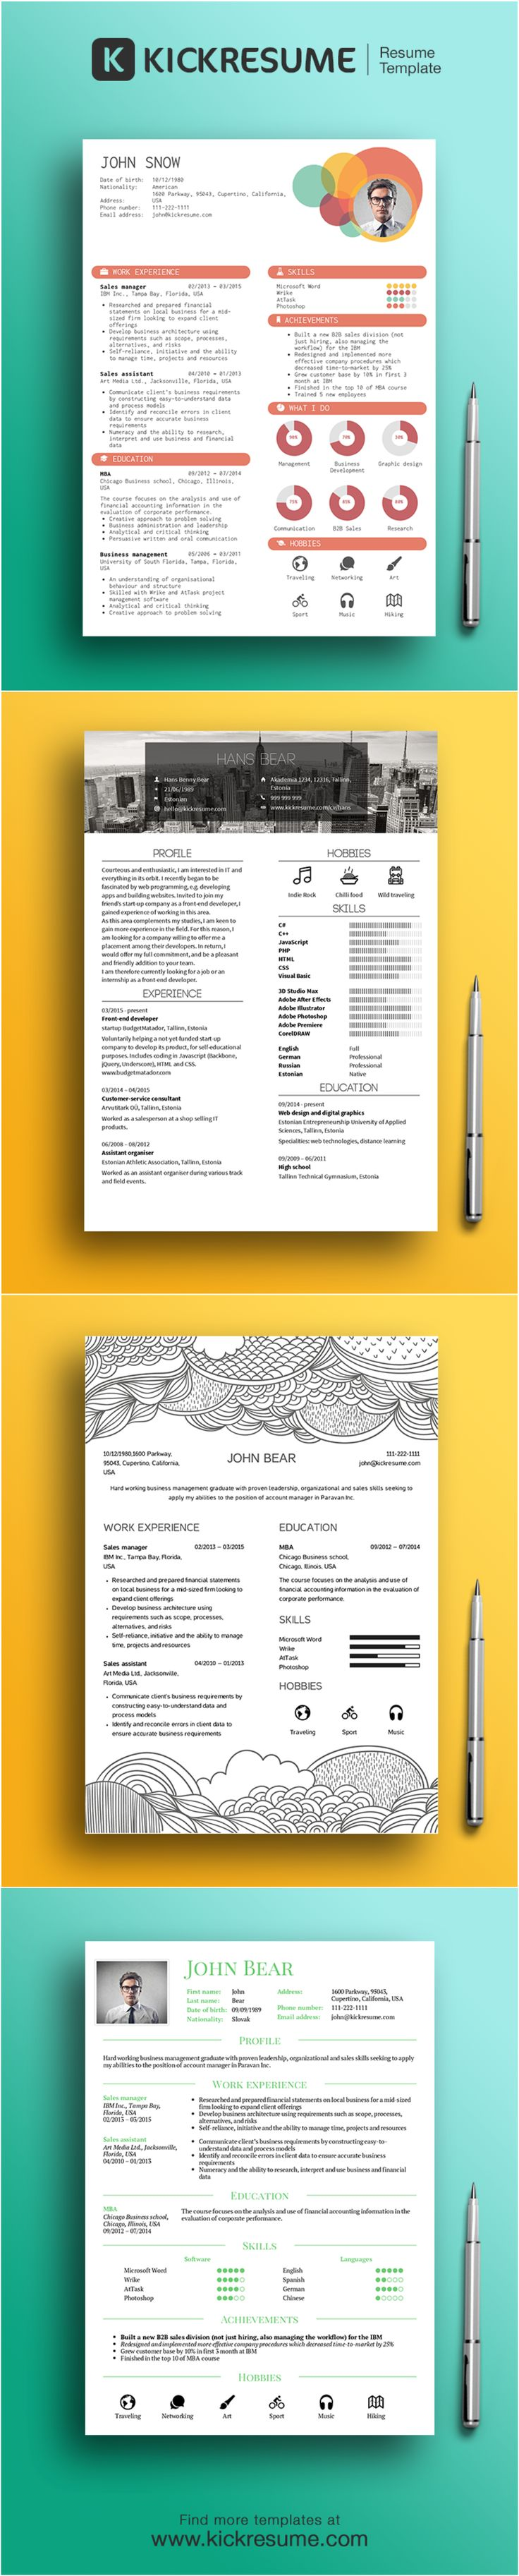 Example Of Graphic Design Resume Inspiration 80 Best Resume Design Images On Pinterest  Resume Gym And Productivity